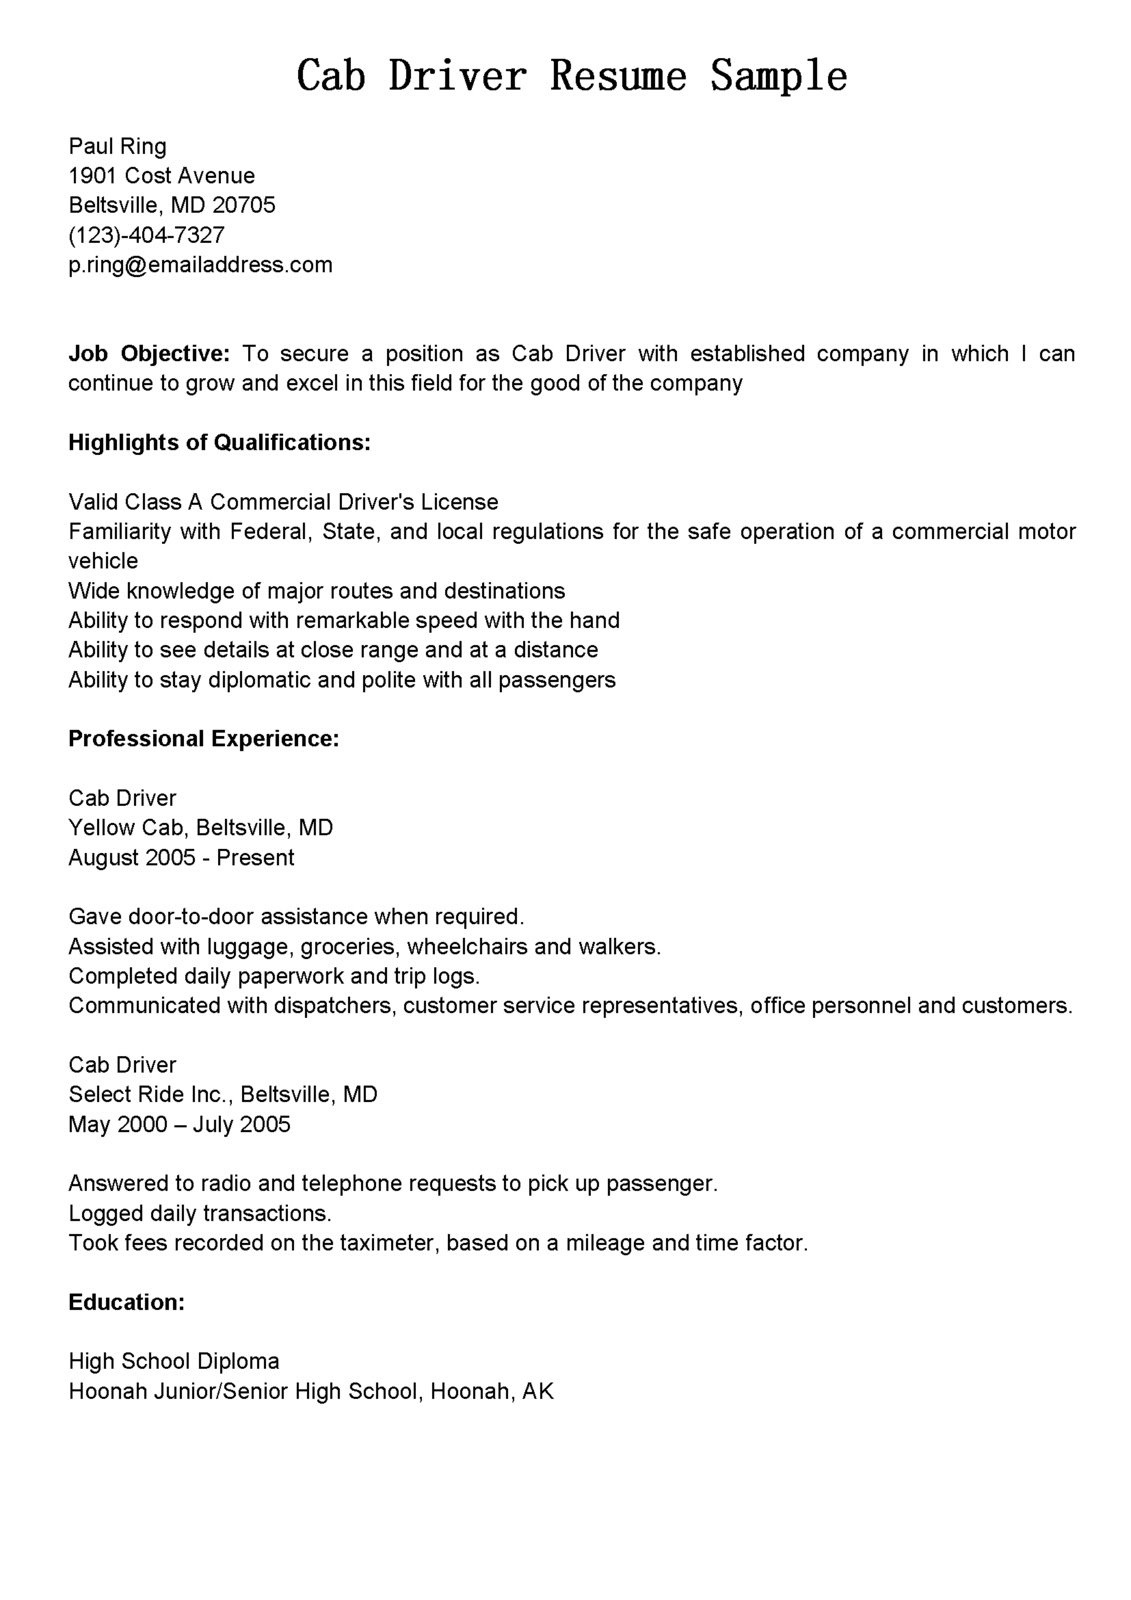 driver resumes  cab driver resume sample